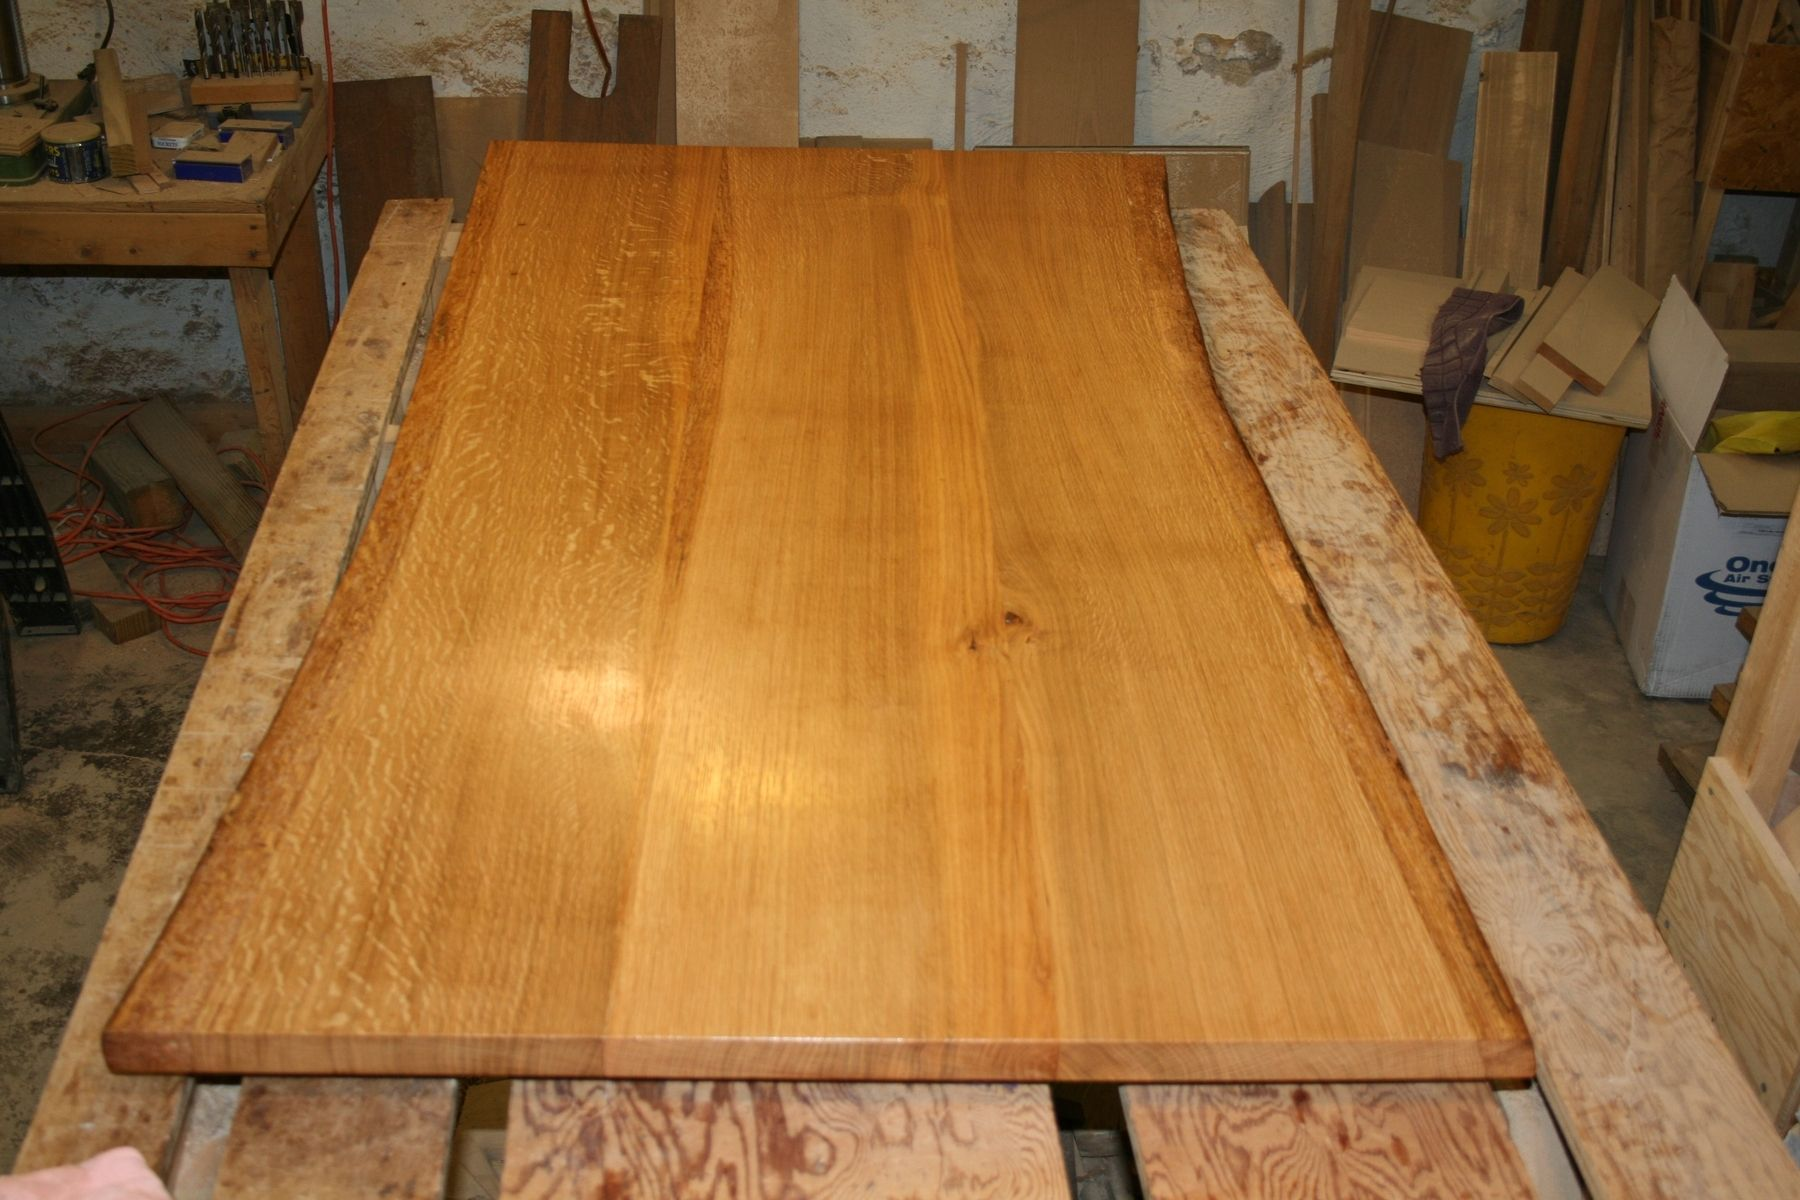 Custom Made White Oak Dining Table Top Live Edge by  : 32899292498 from www.custommade.com size 1800 x 1200 jpeg 246kB